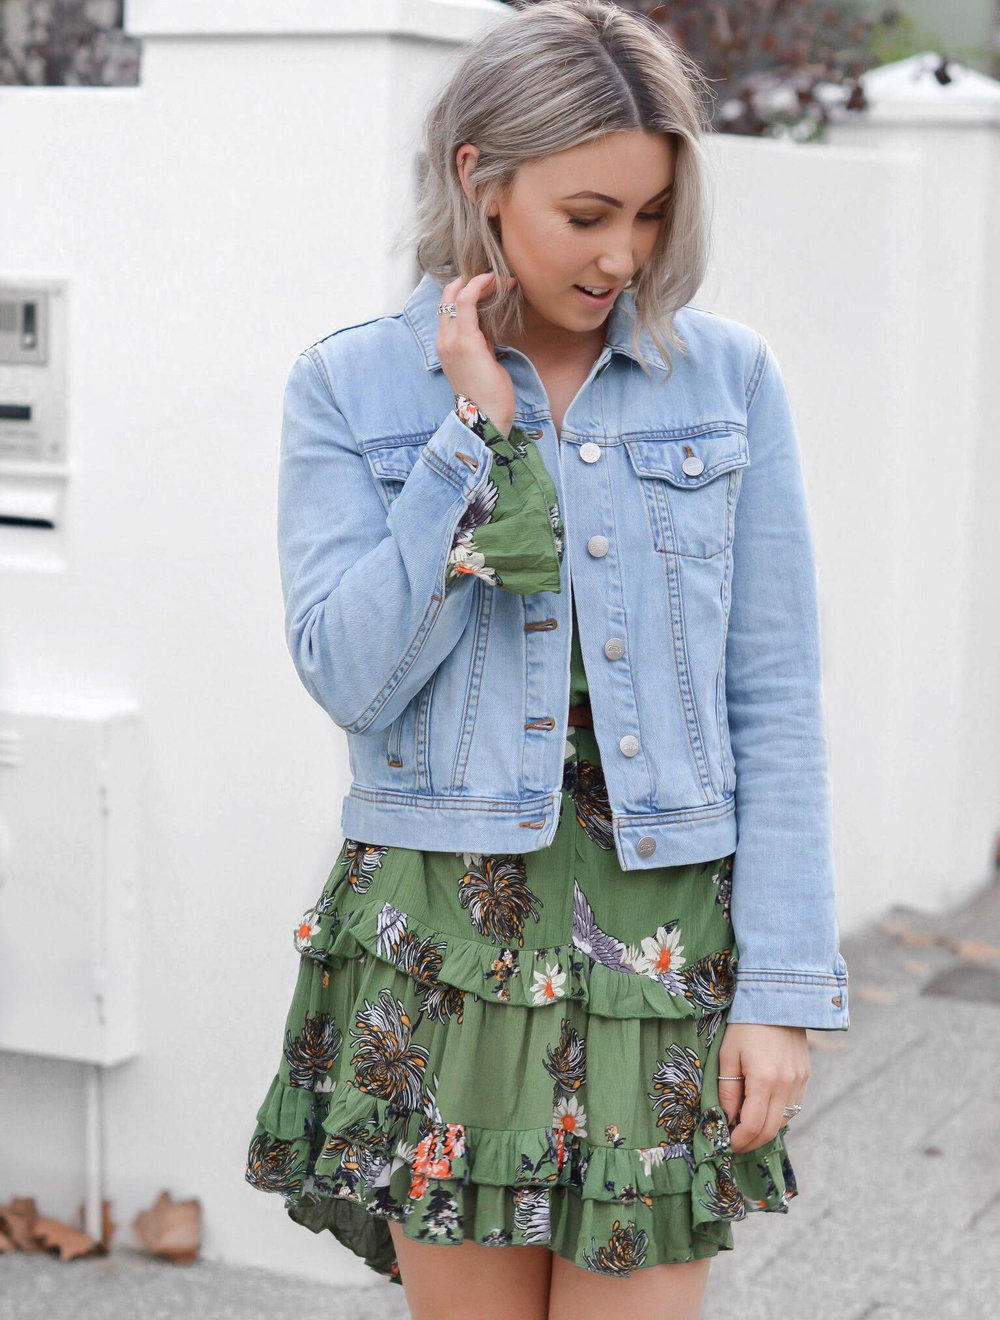 Pictured:  Garden Party Dress  from  Lock & Key Clothing  &  Classic Denim Jacket  from  Sportsgirl .